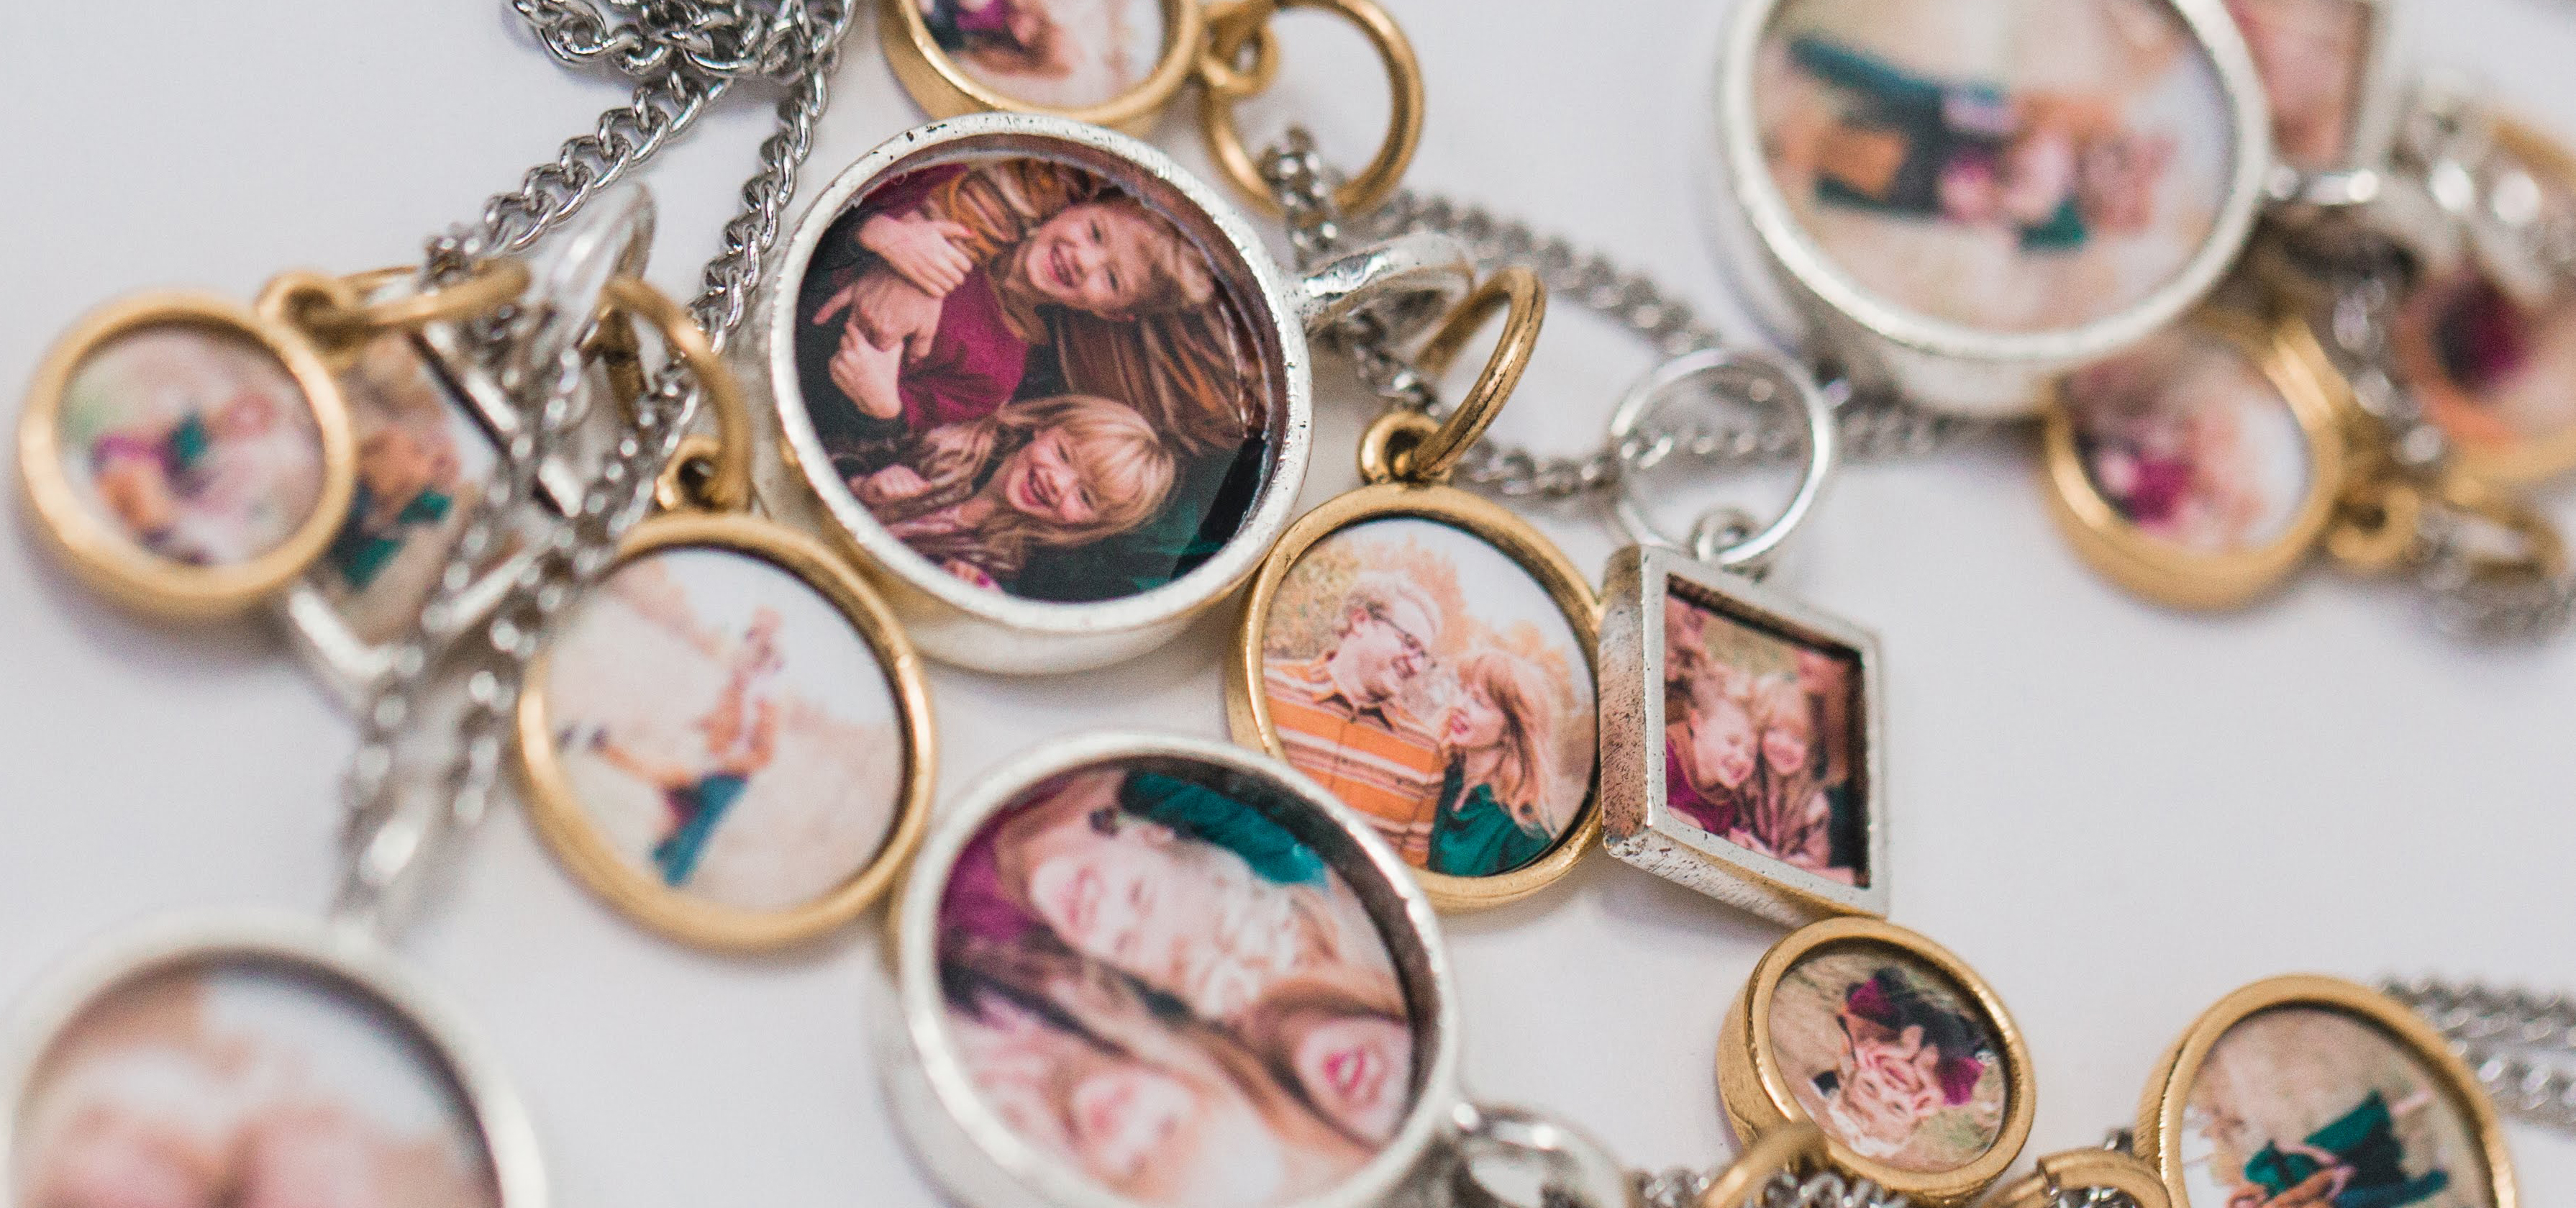 Locket pendants with photos inside